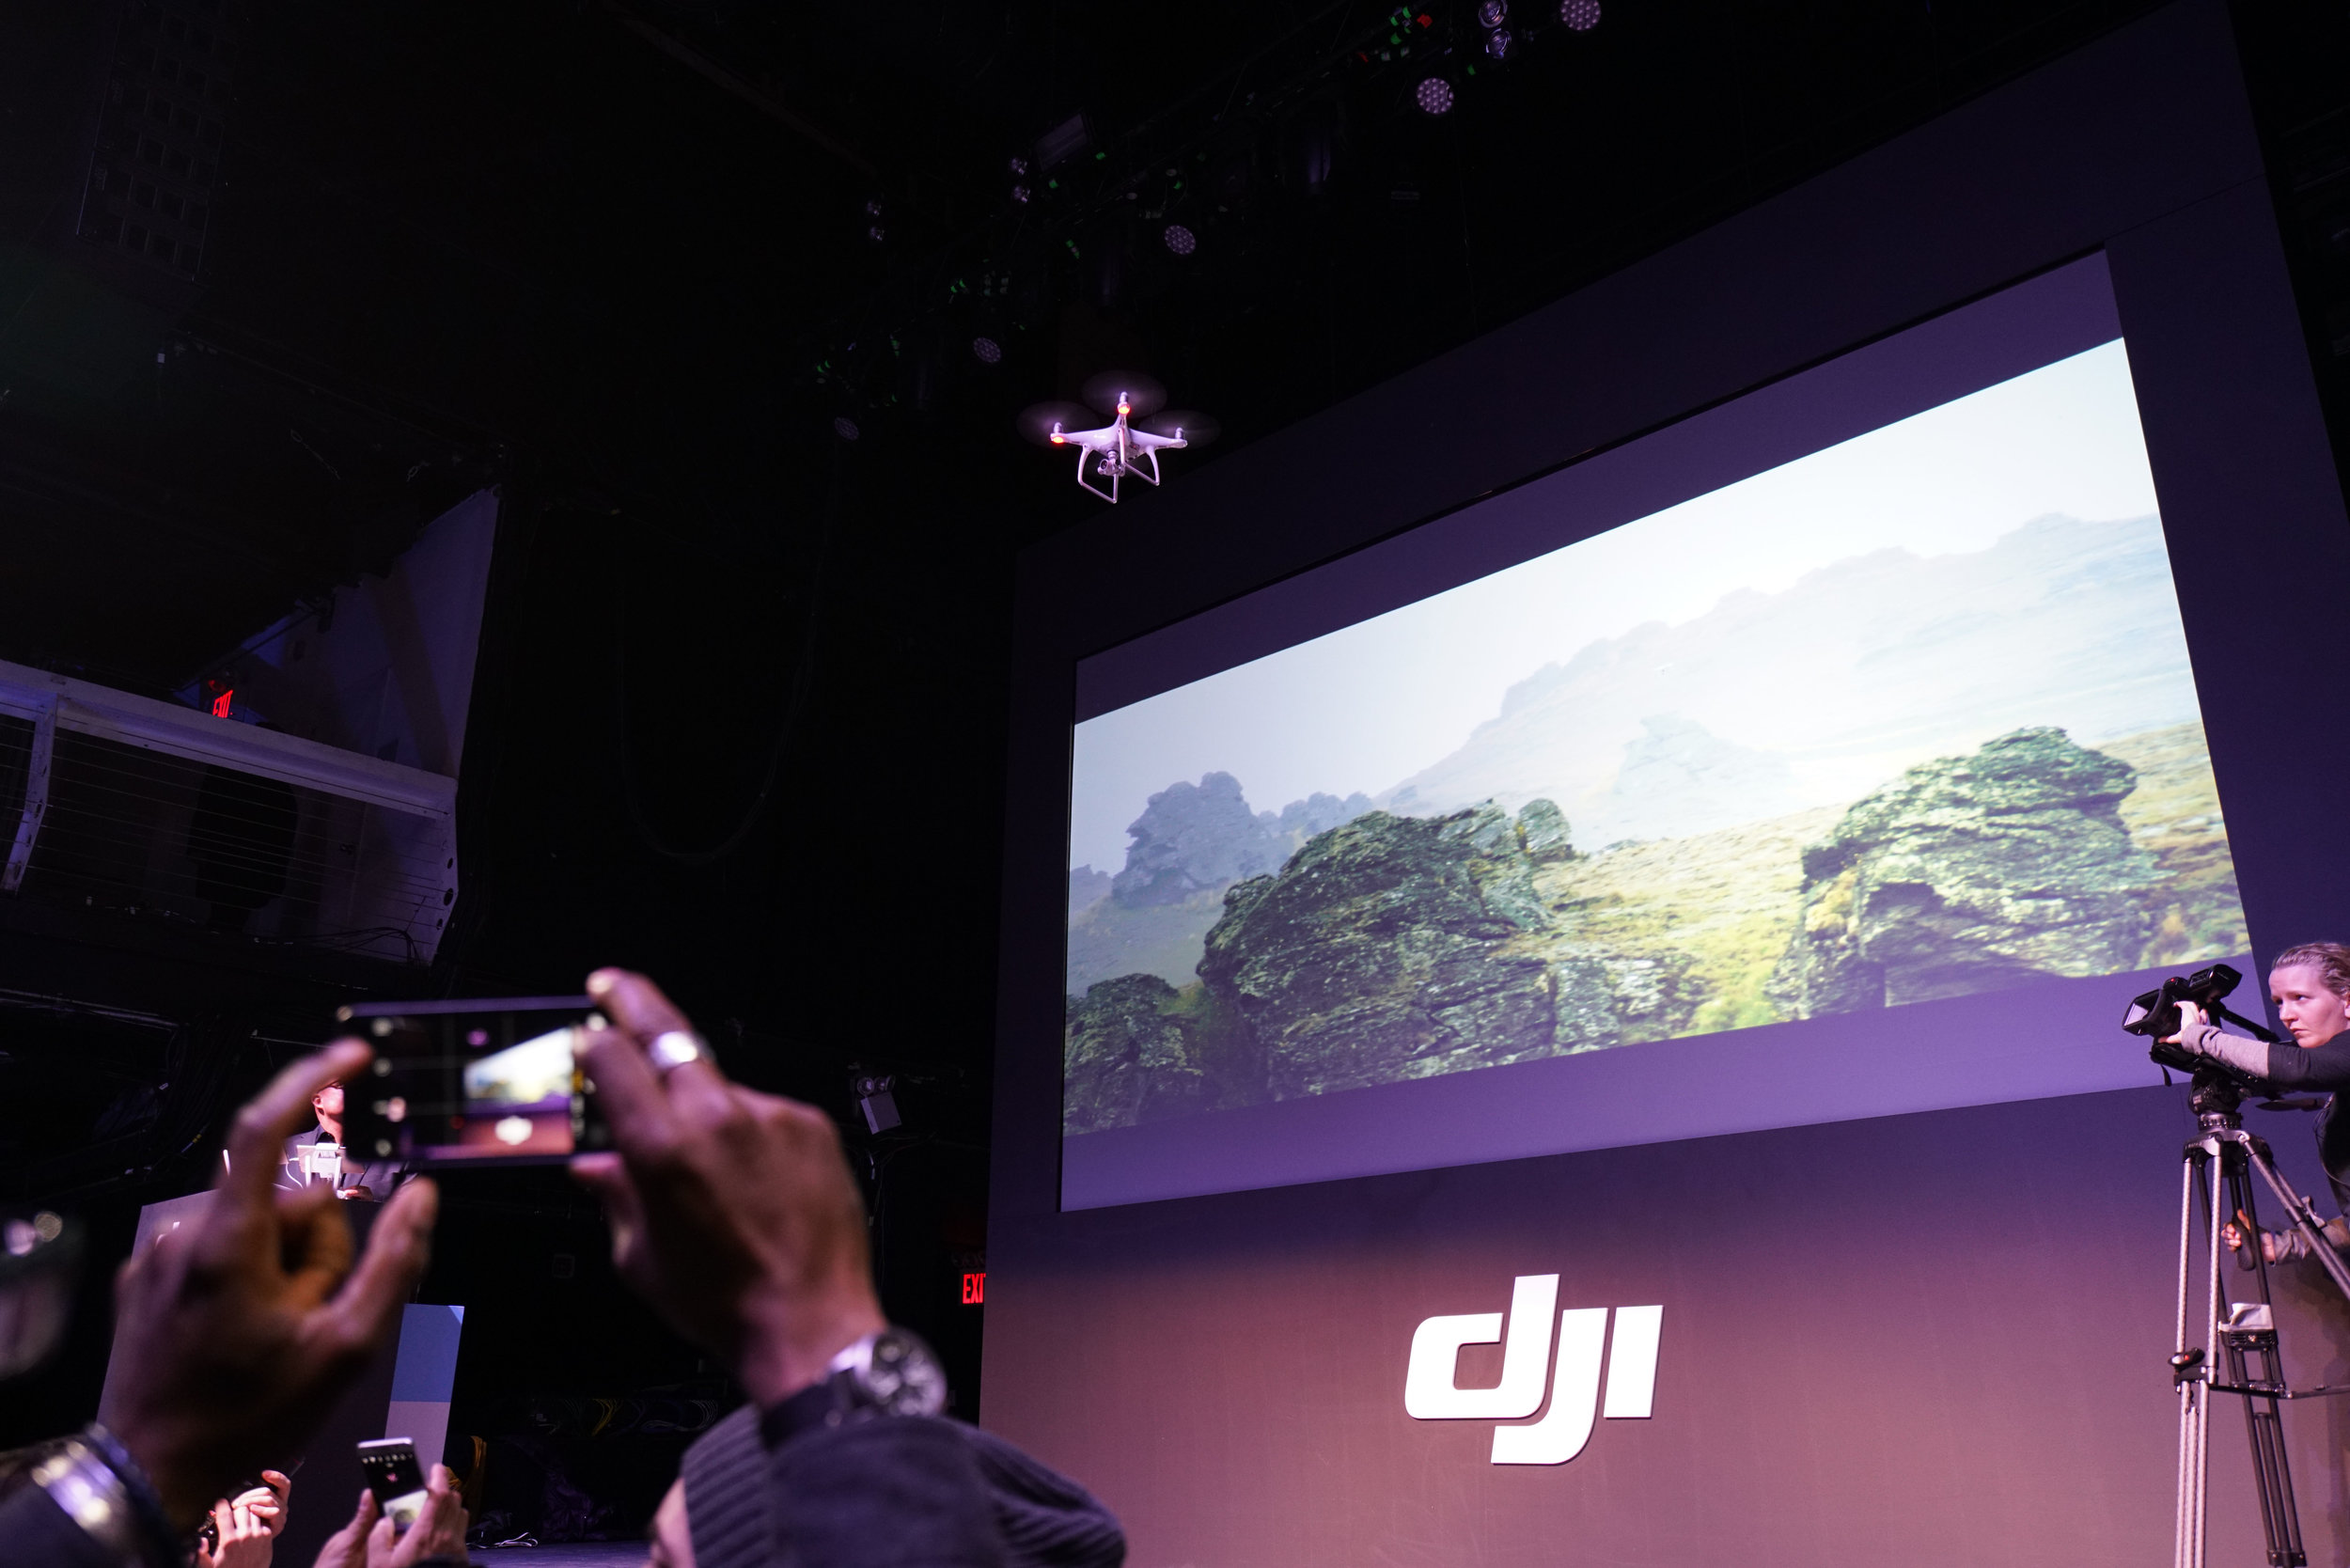 DJI Phantom Drone Obstacle Course @ Terminal 5